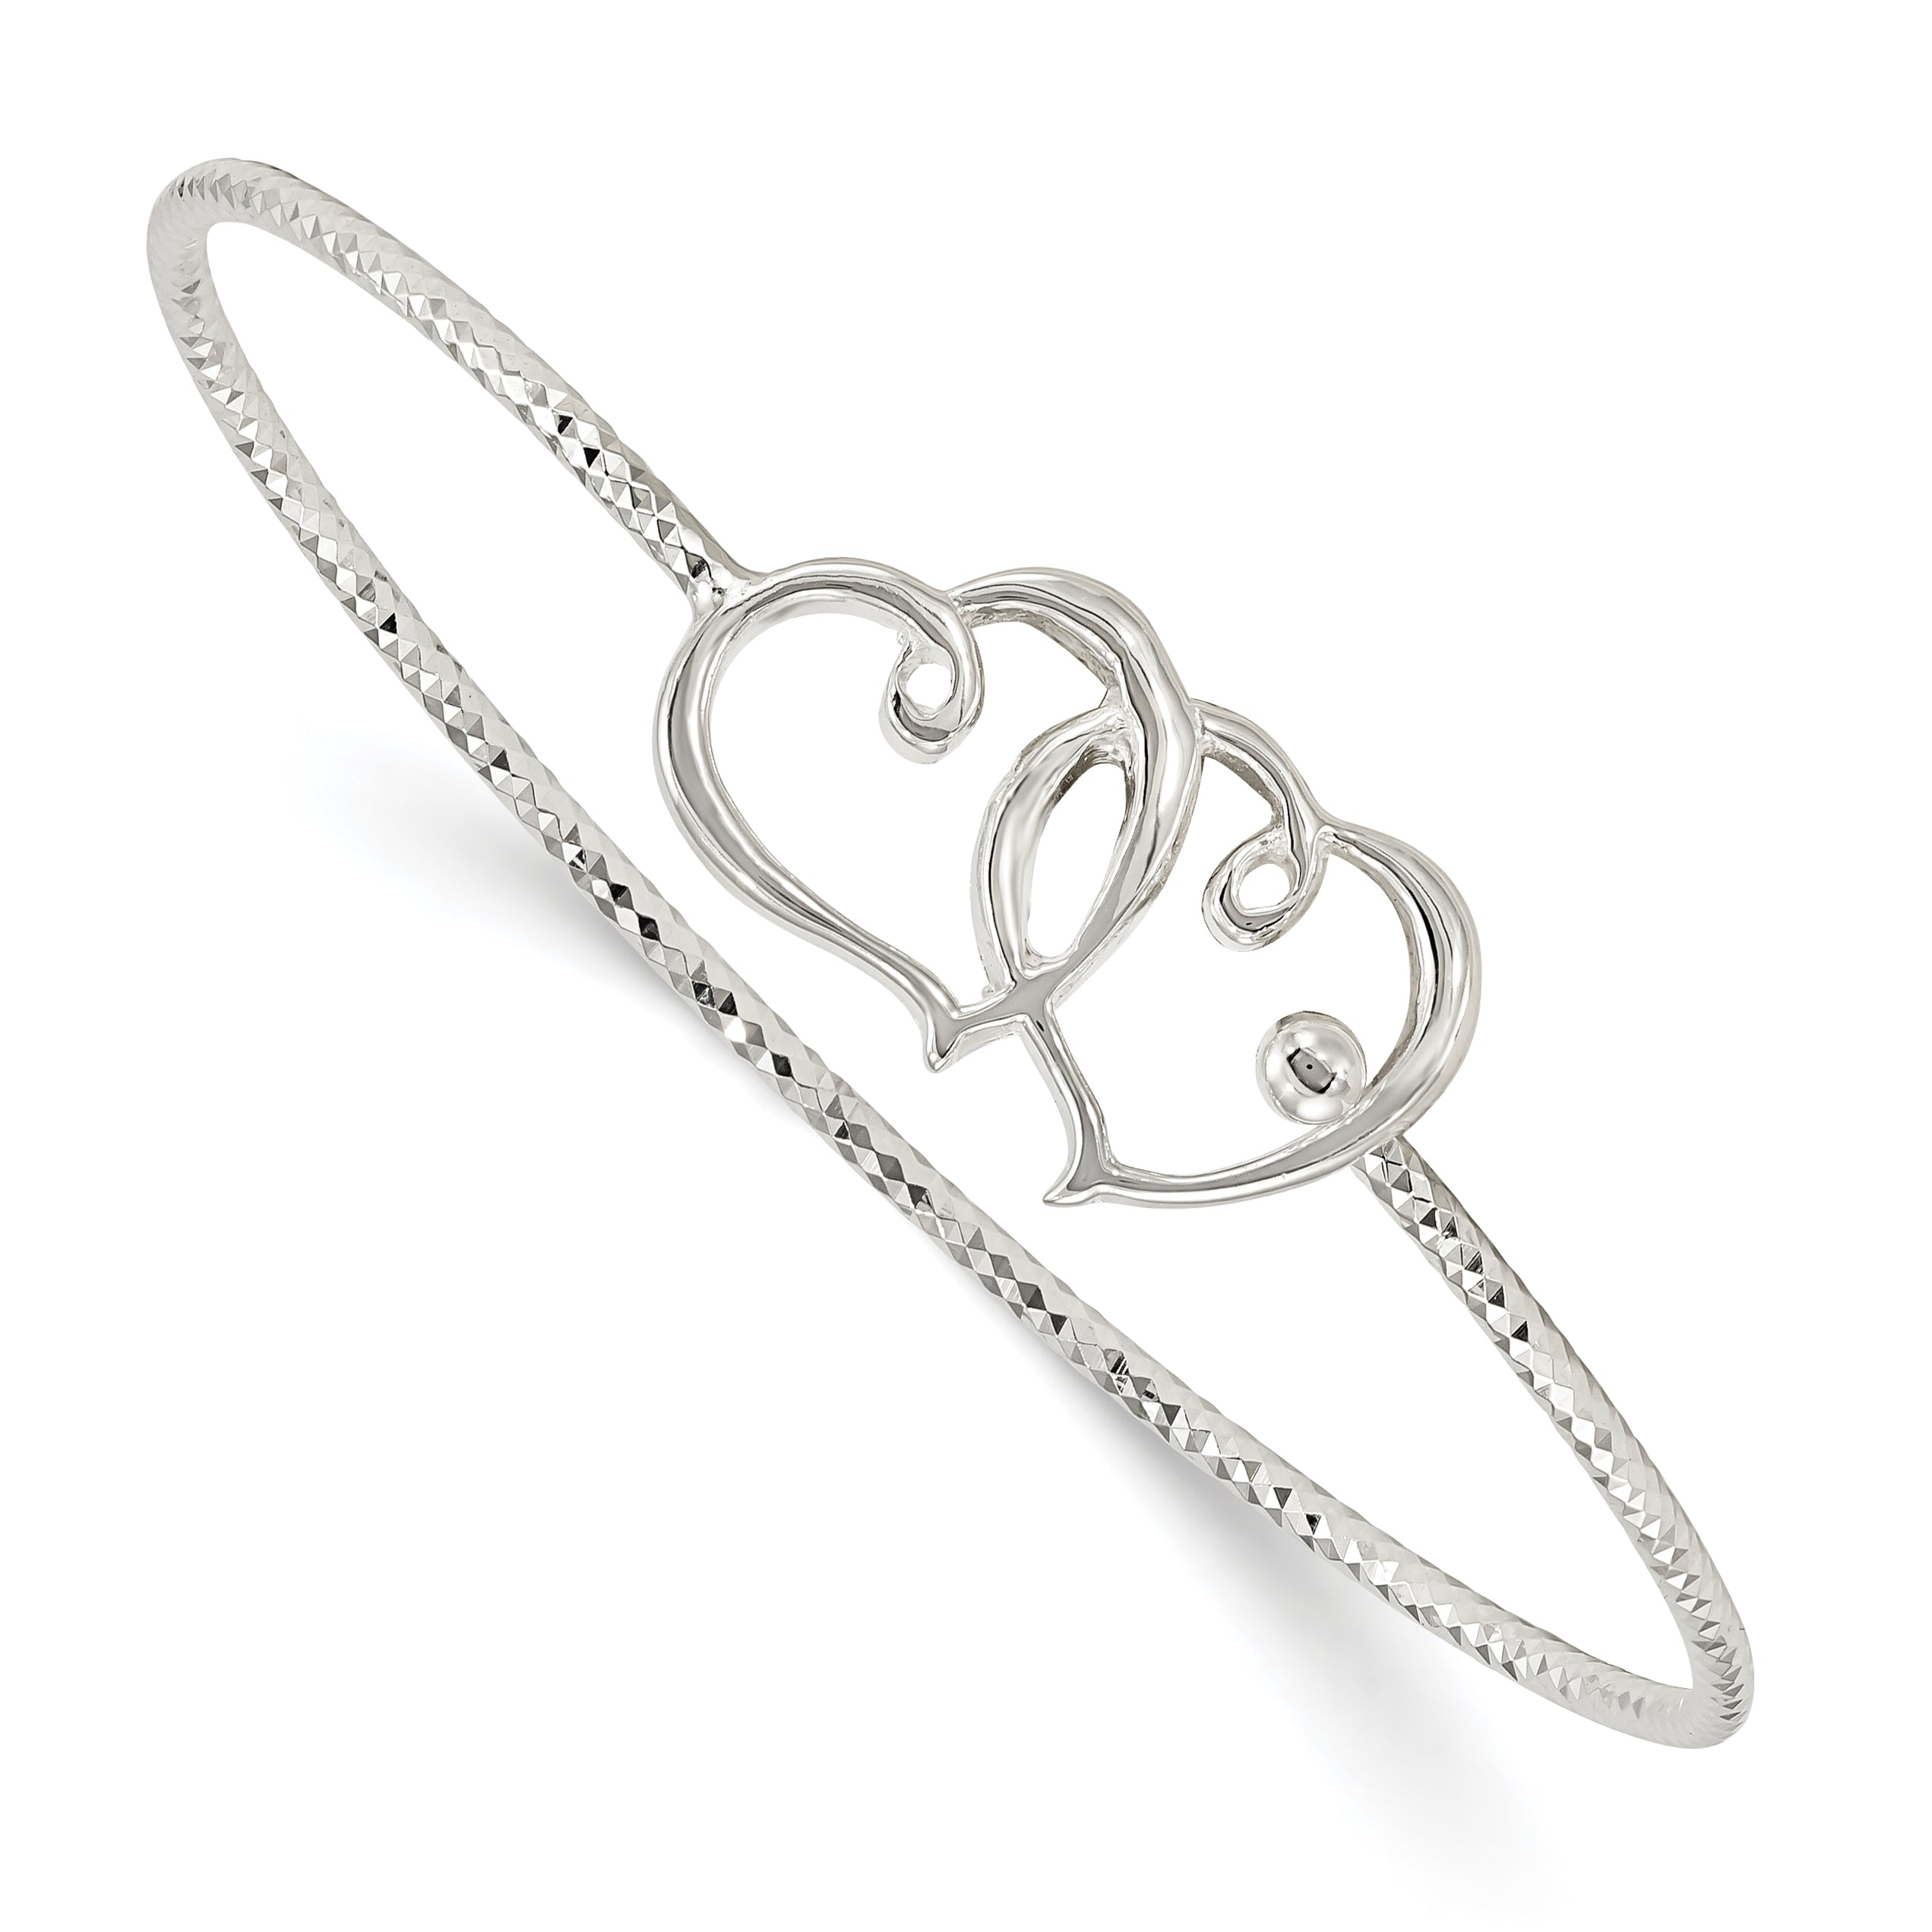 Sterling Silver Diamond Cut Double Heart Interlocking Bangle Bracelet QB1122 - shirin-diamonds